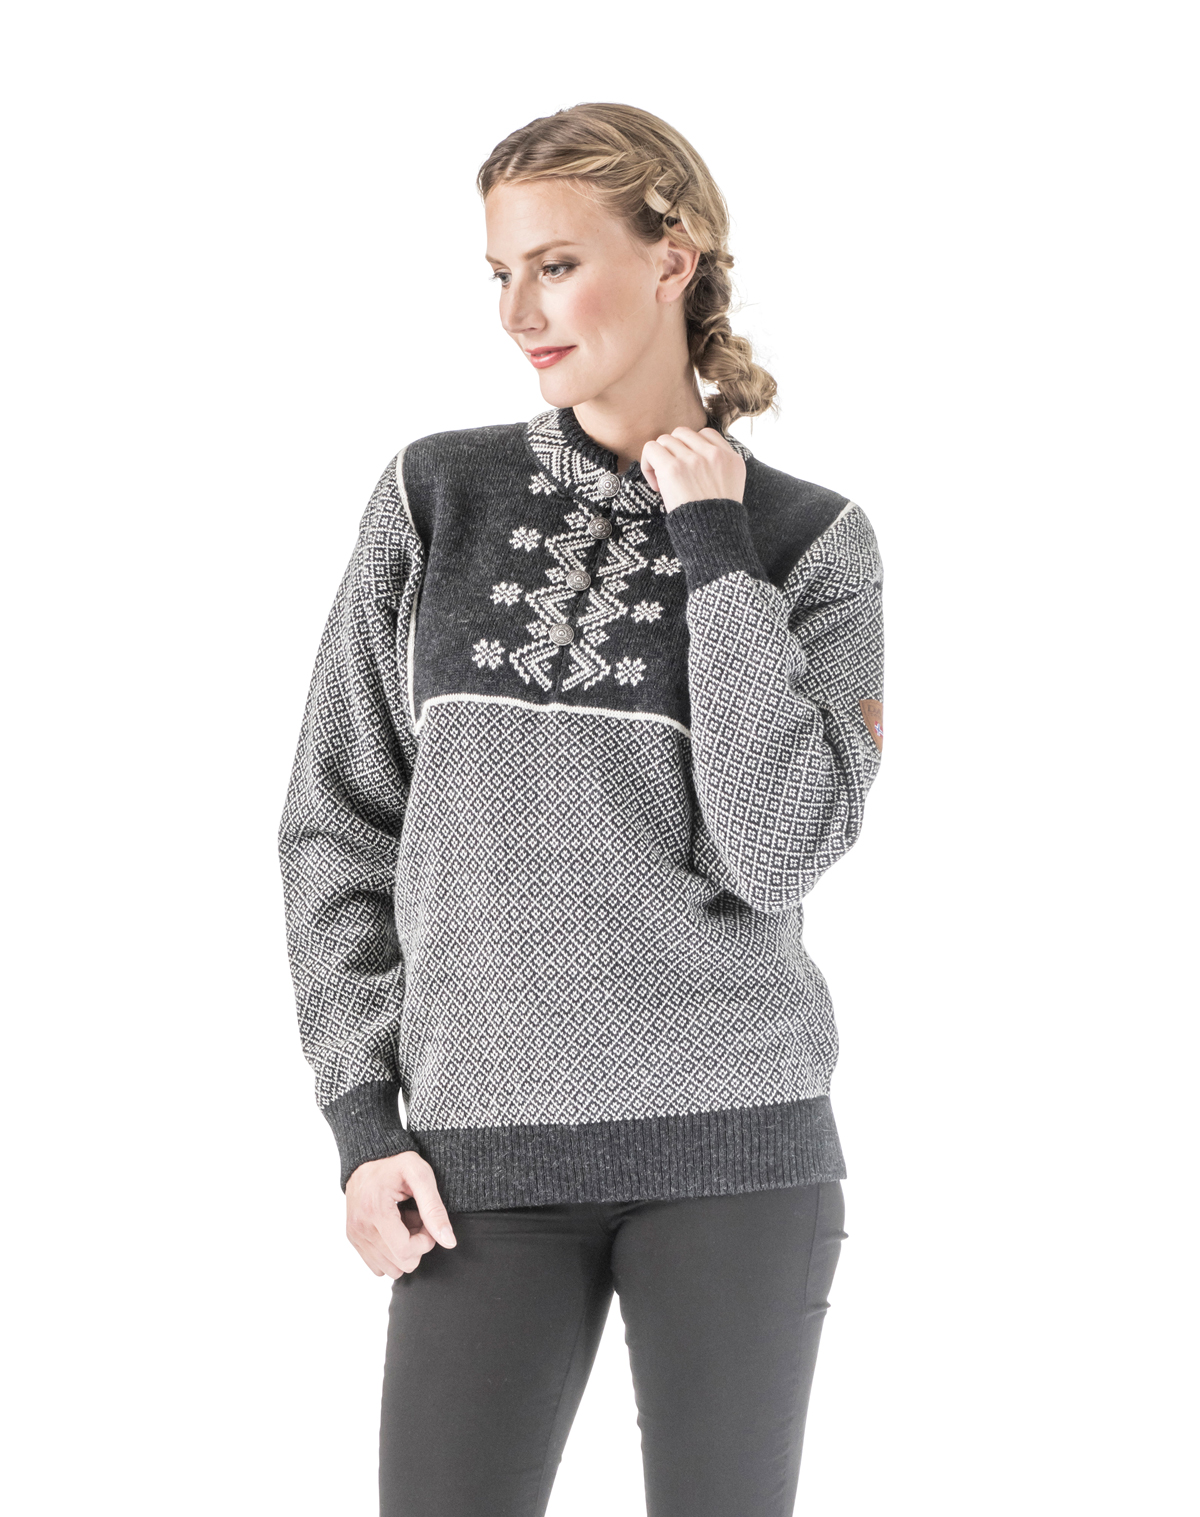 Valdres Unisex Sweater